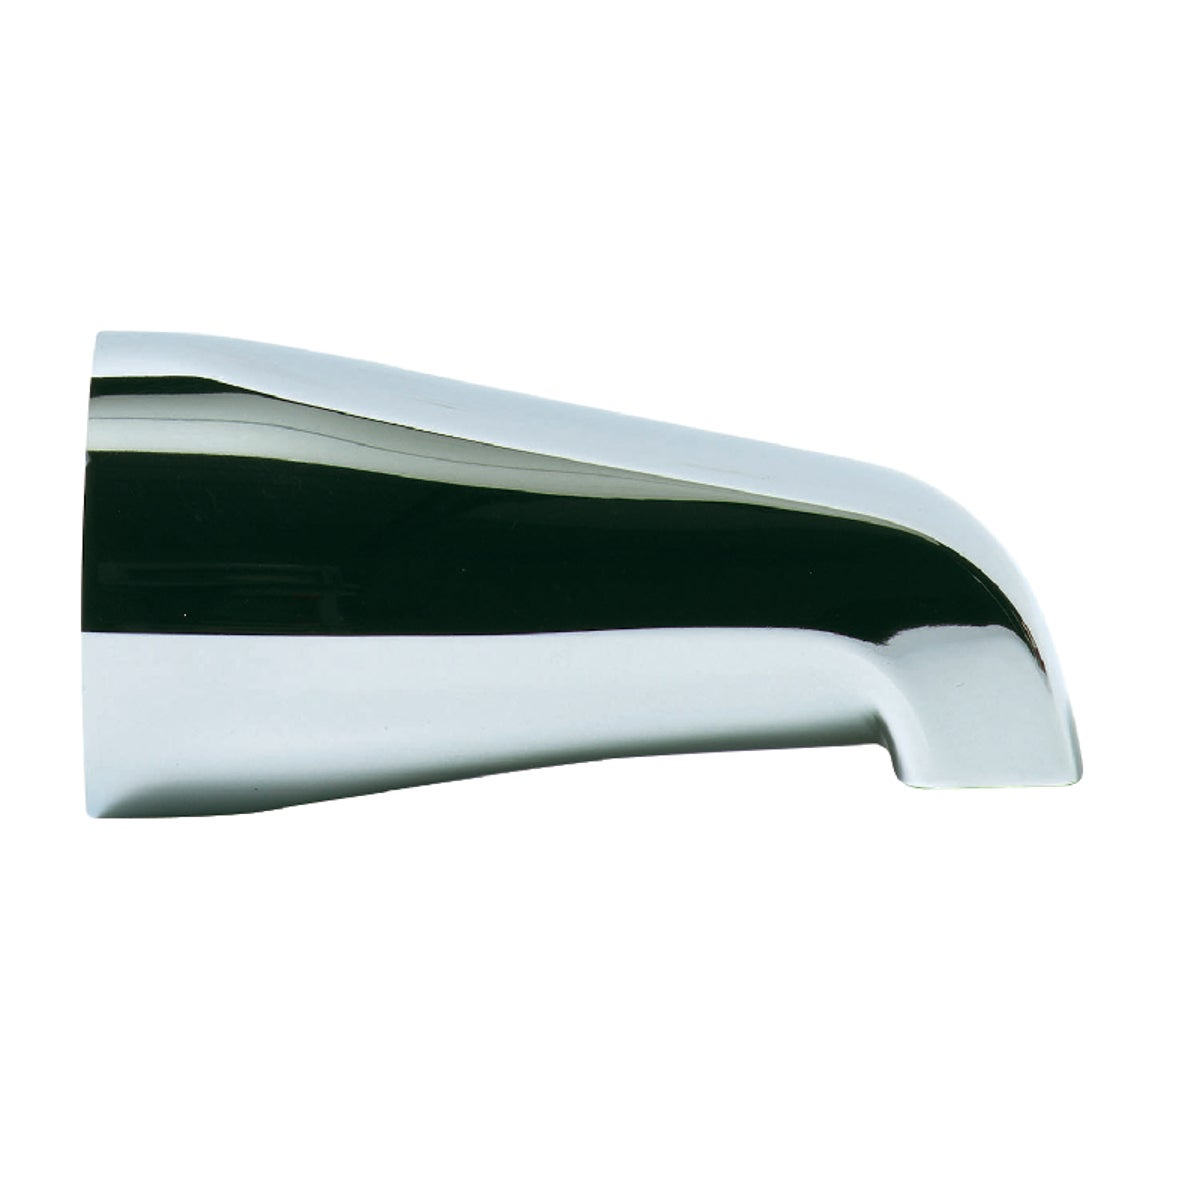 CHROME BATH SPOUT - 406769 by Do it Best